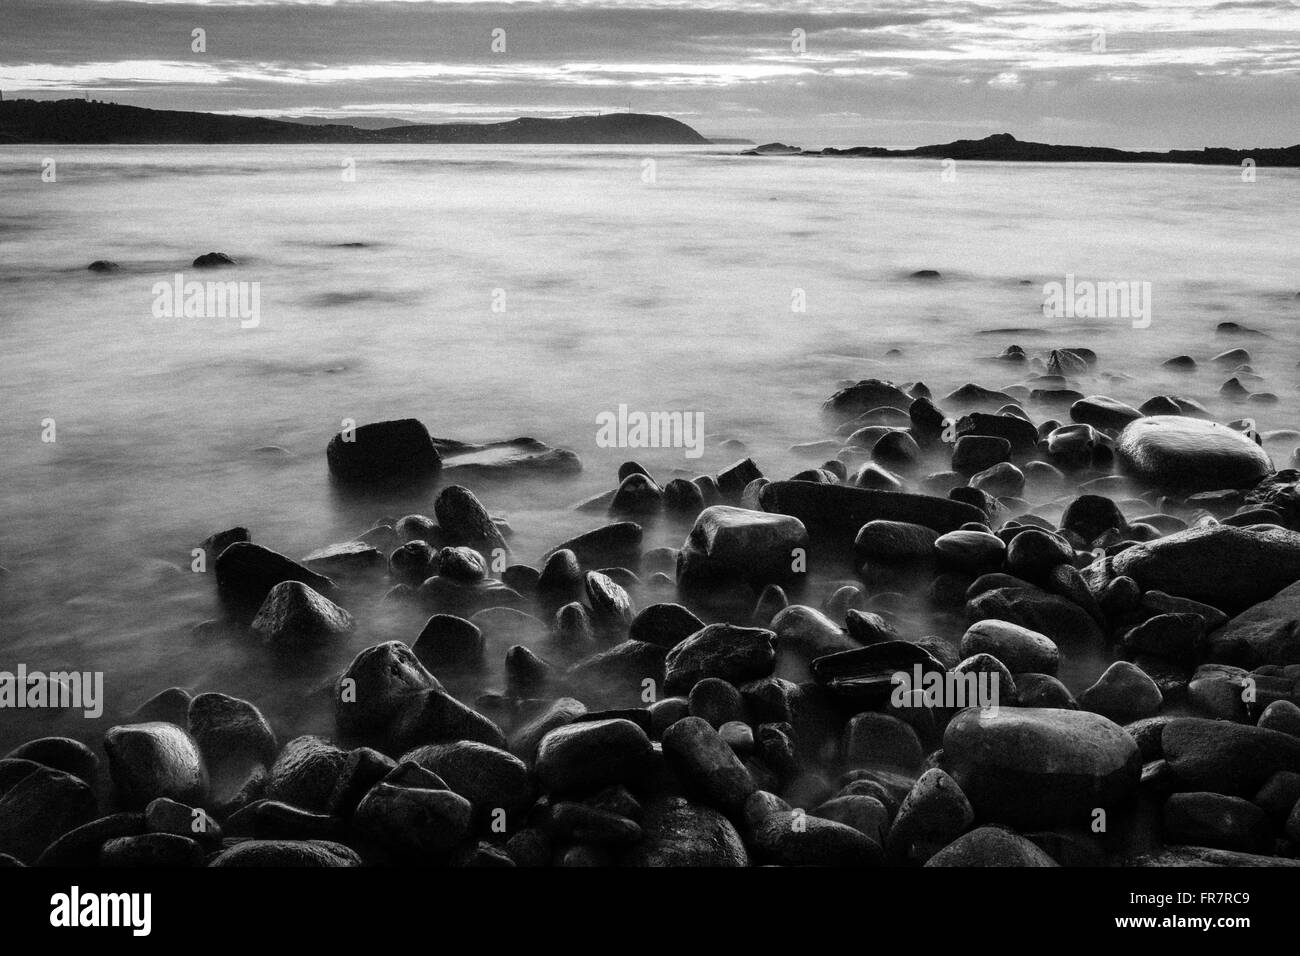 Images taken in galician coast (Spain) at sunset. Zone of Bens near the city of A Coruña, Galicia, Spain. - Stock Image